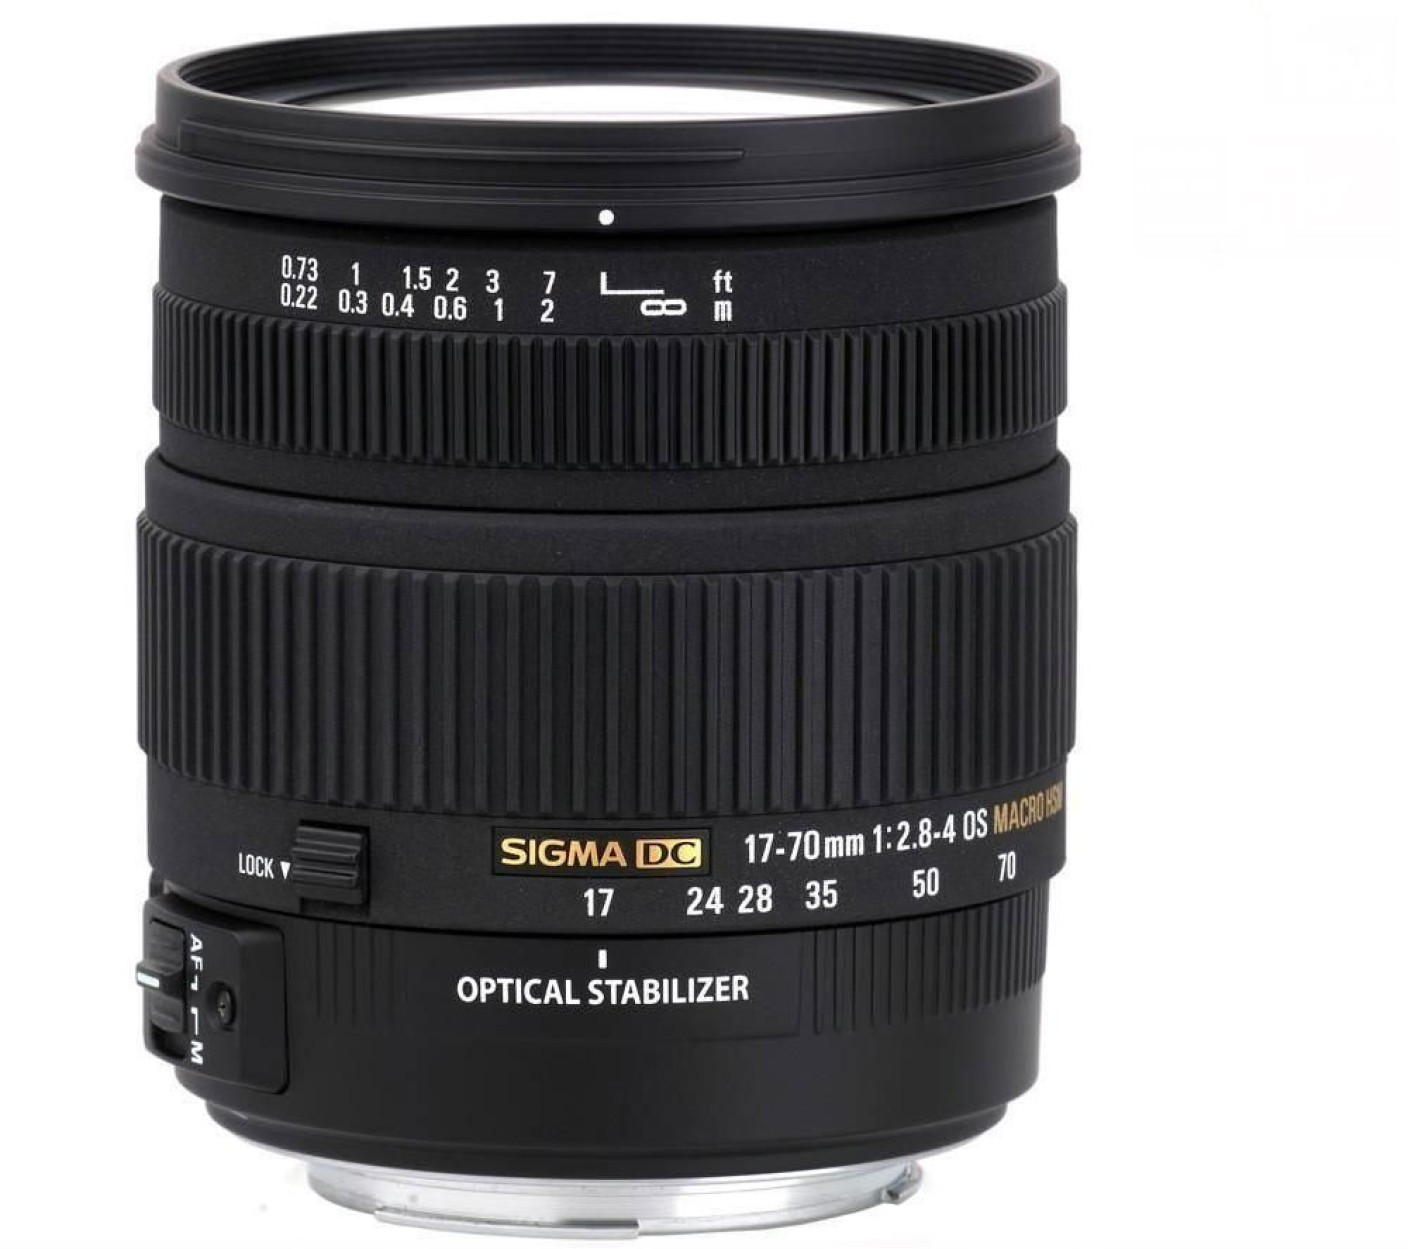 sigma 17 70 mm f2 8 4 dc macro os hsm for nikon digital slr lens sigma. Black Bedroom Furniture Sets. Home Design Ideas